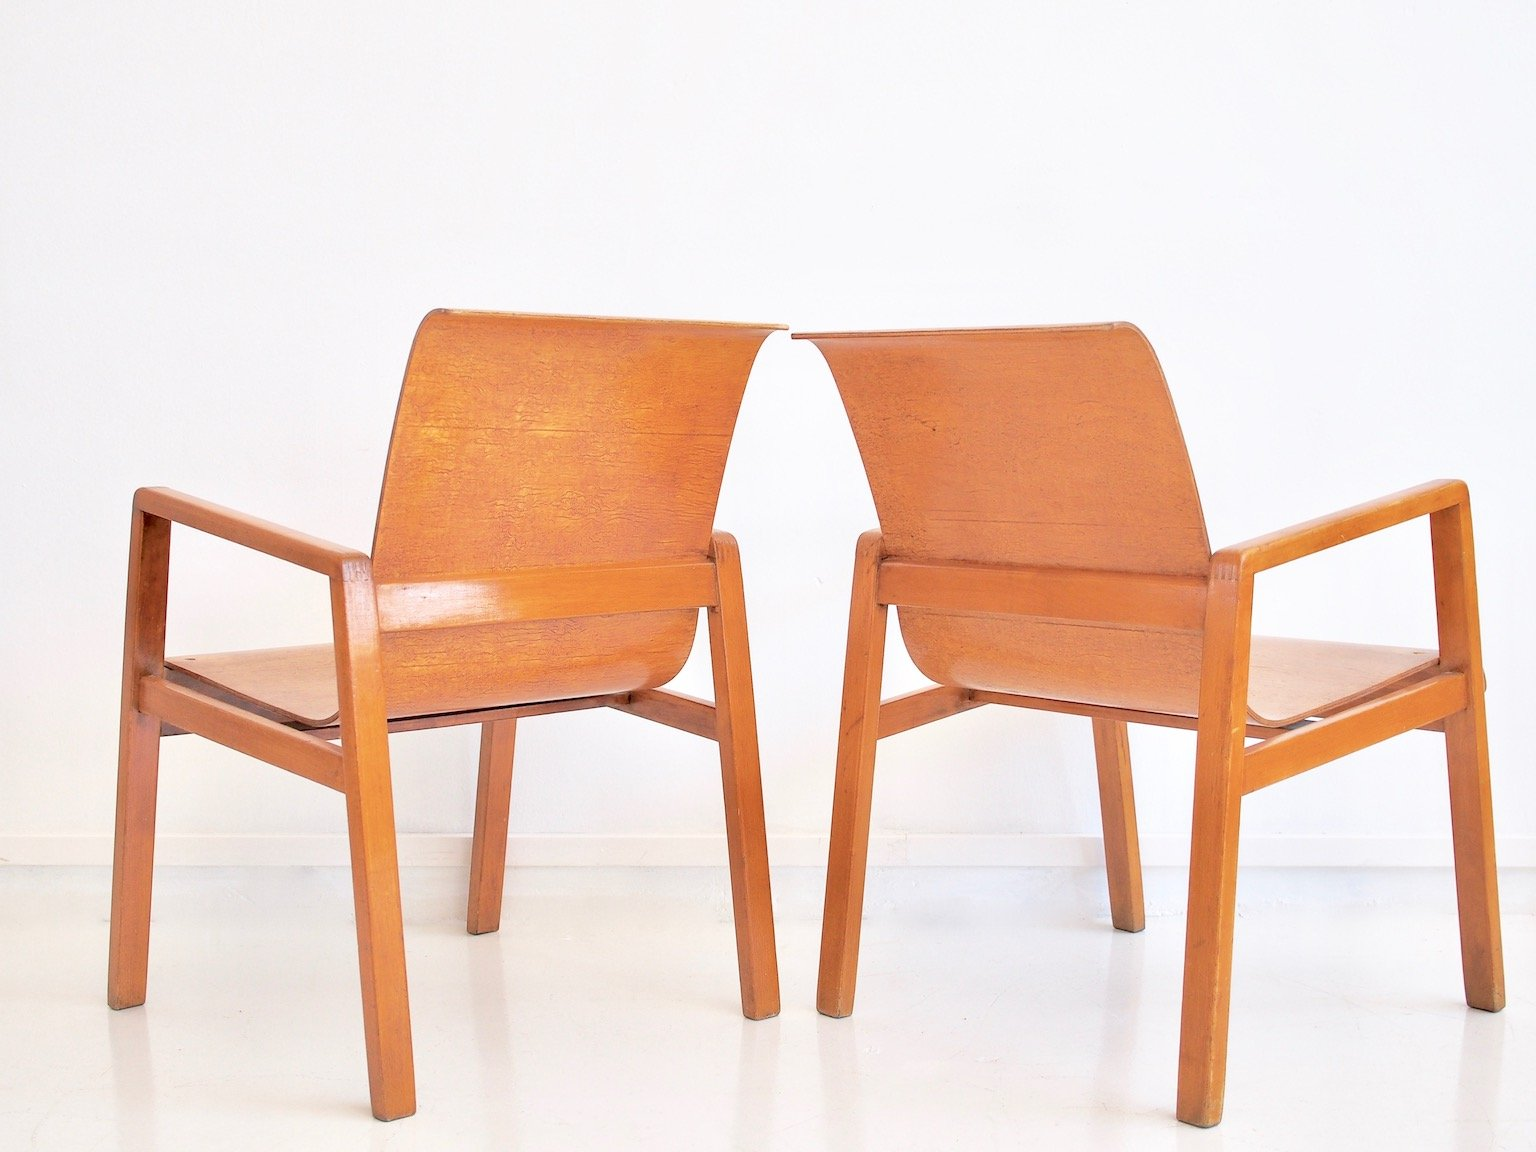 High Quality 403 Hallway Chairs By Alvar Aalto For Finmar, Set Of 2